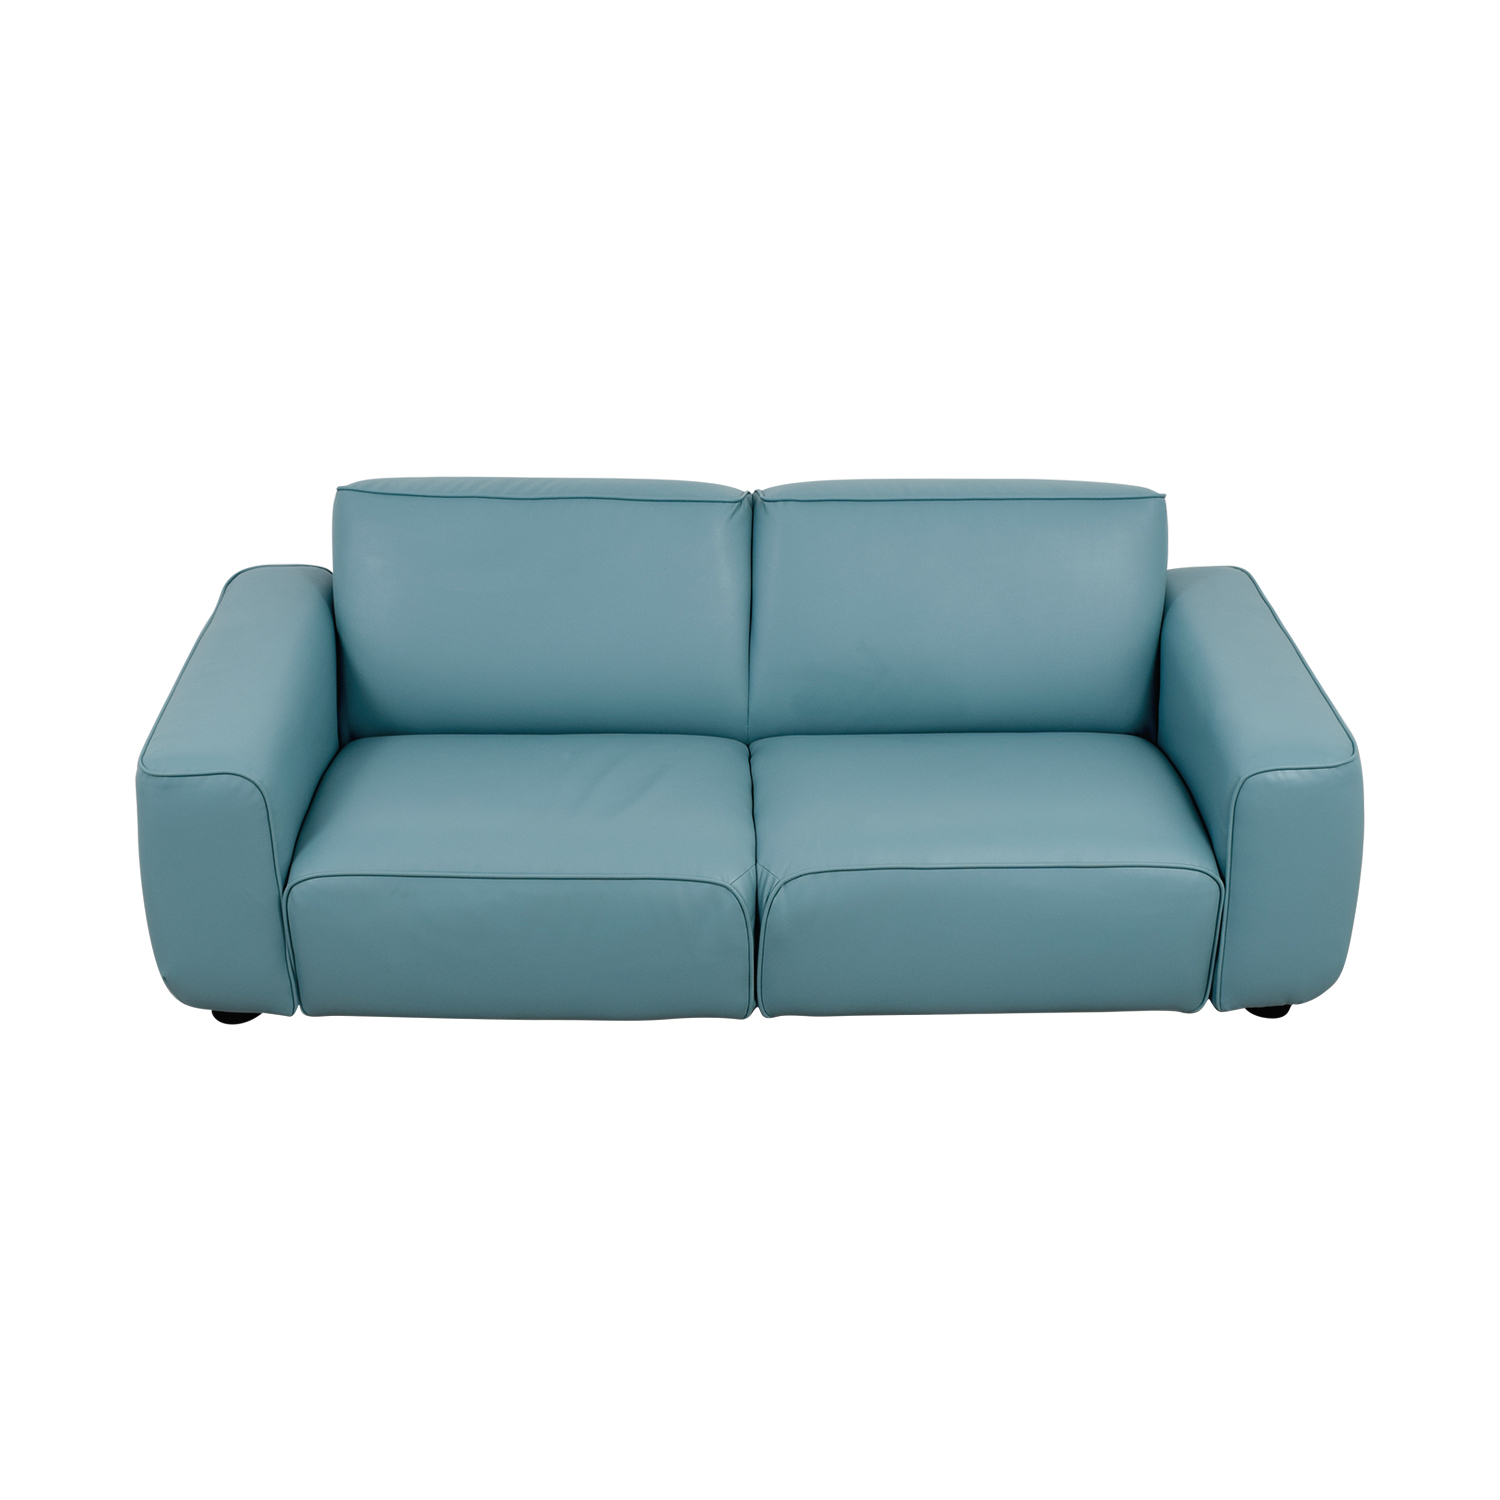 IKEA IKEA Coated Baby Blue Loveseat nyc